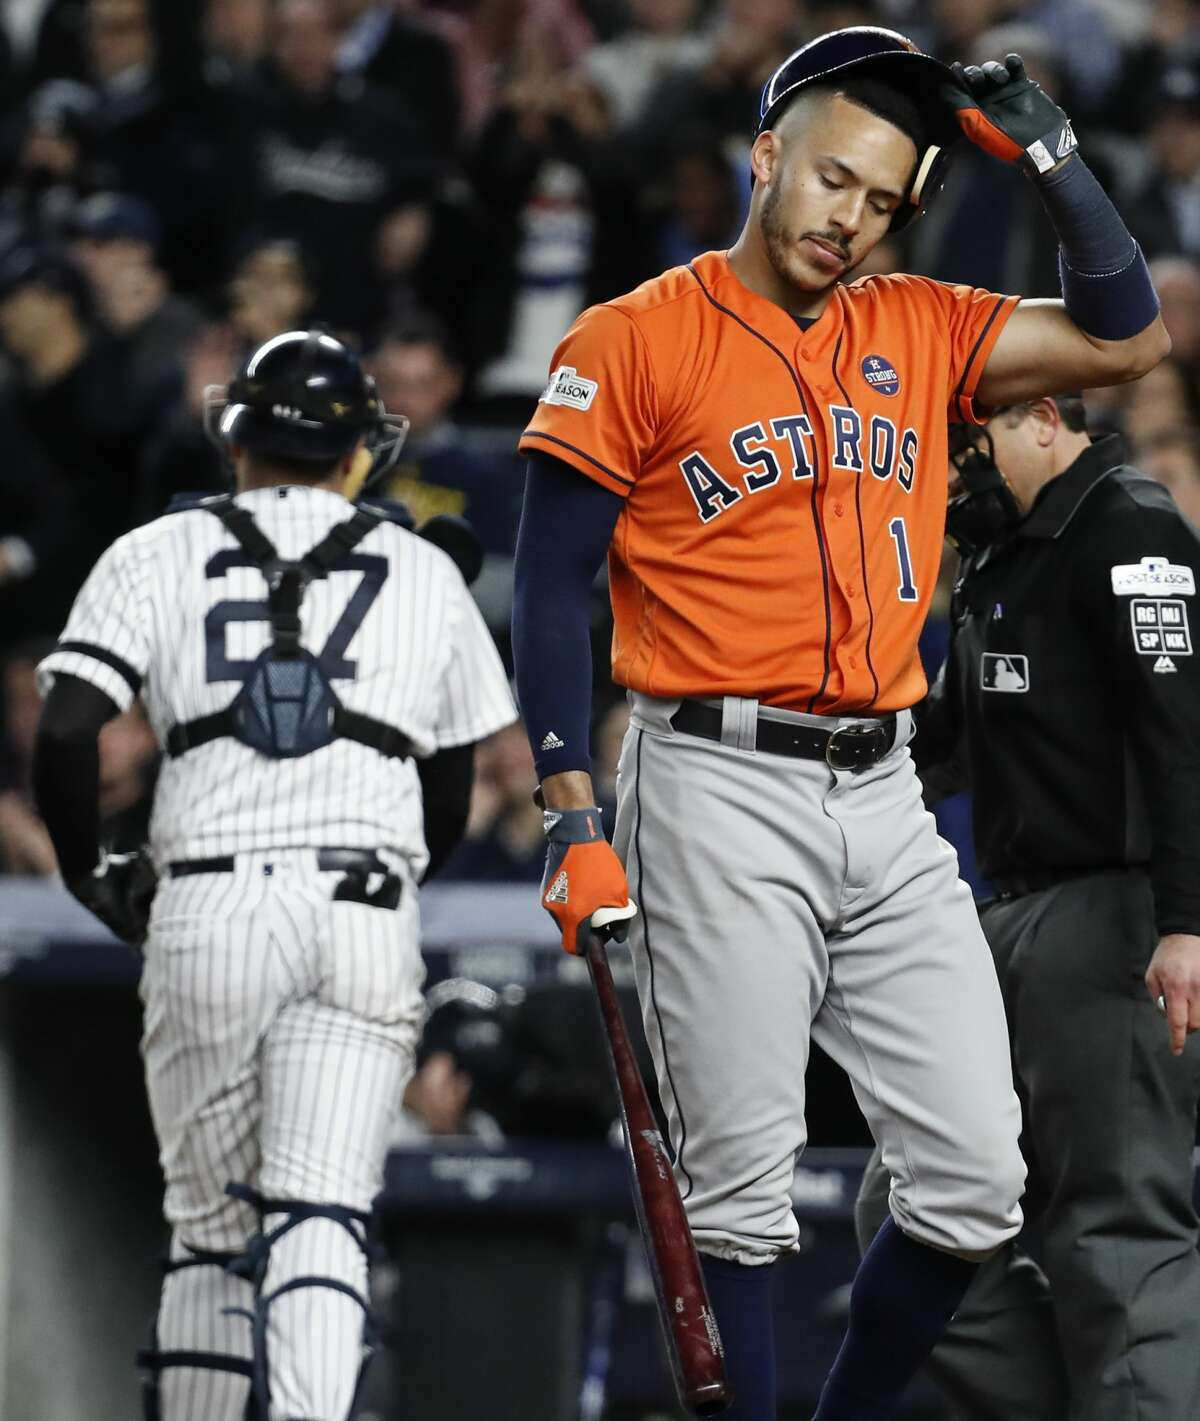 Houston Astros shortstop Carlos Correa (1) walks off the field after striking out to end the top of the eighth inning of Game 4 of the ALCS against the New York Yankees at Yankee Stadium on Tuesday, Oct. 17, 2017, in New York. ( Karen Warren / Houston Chronicle )